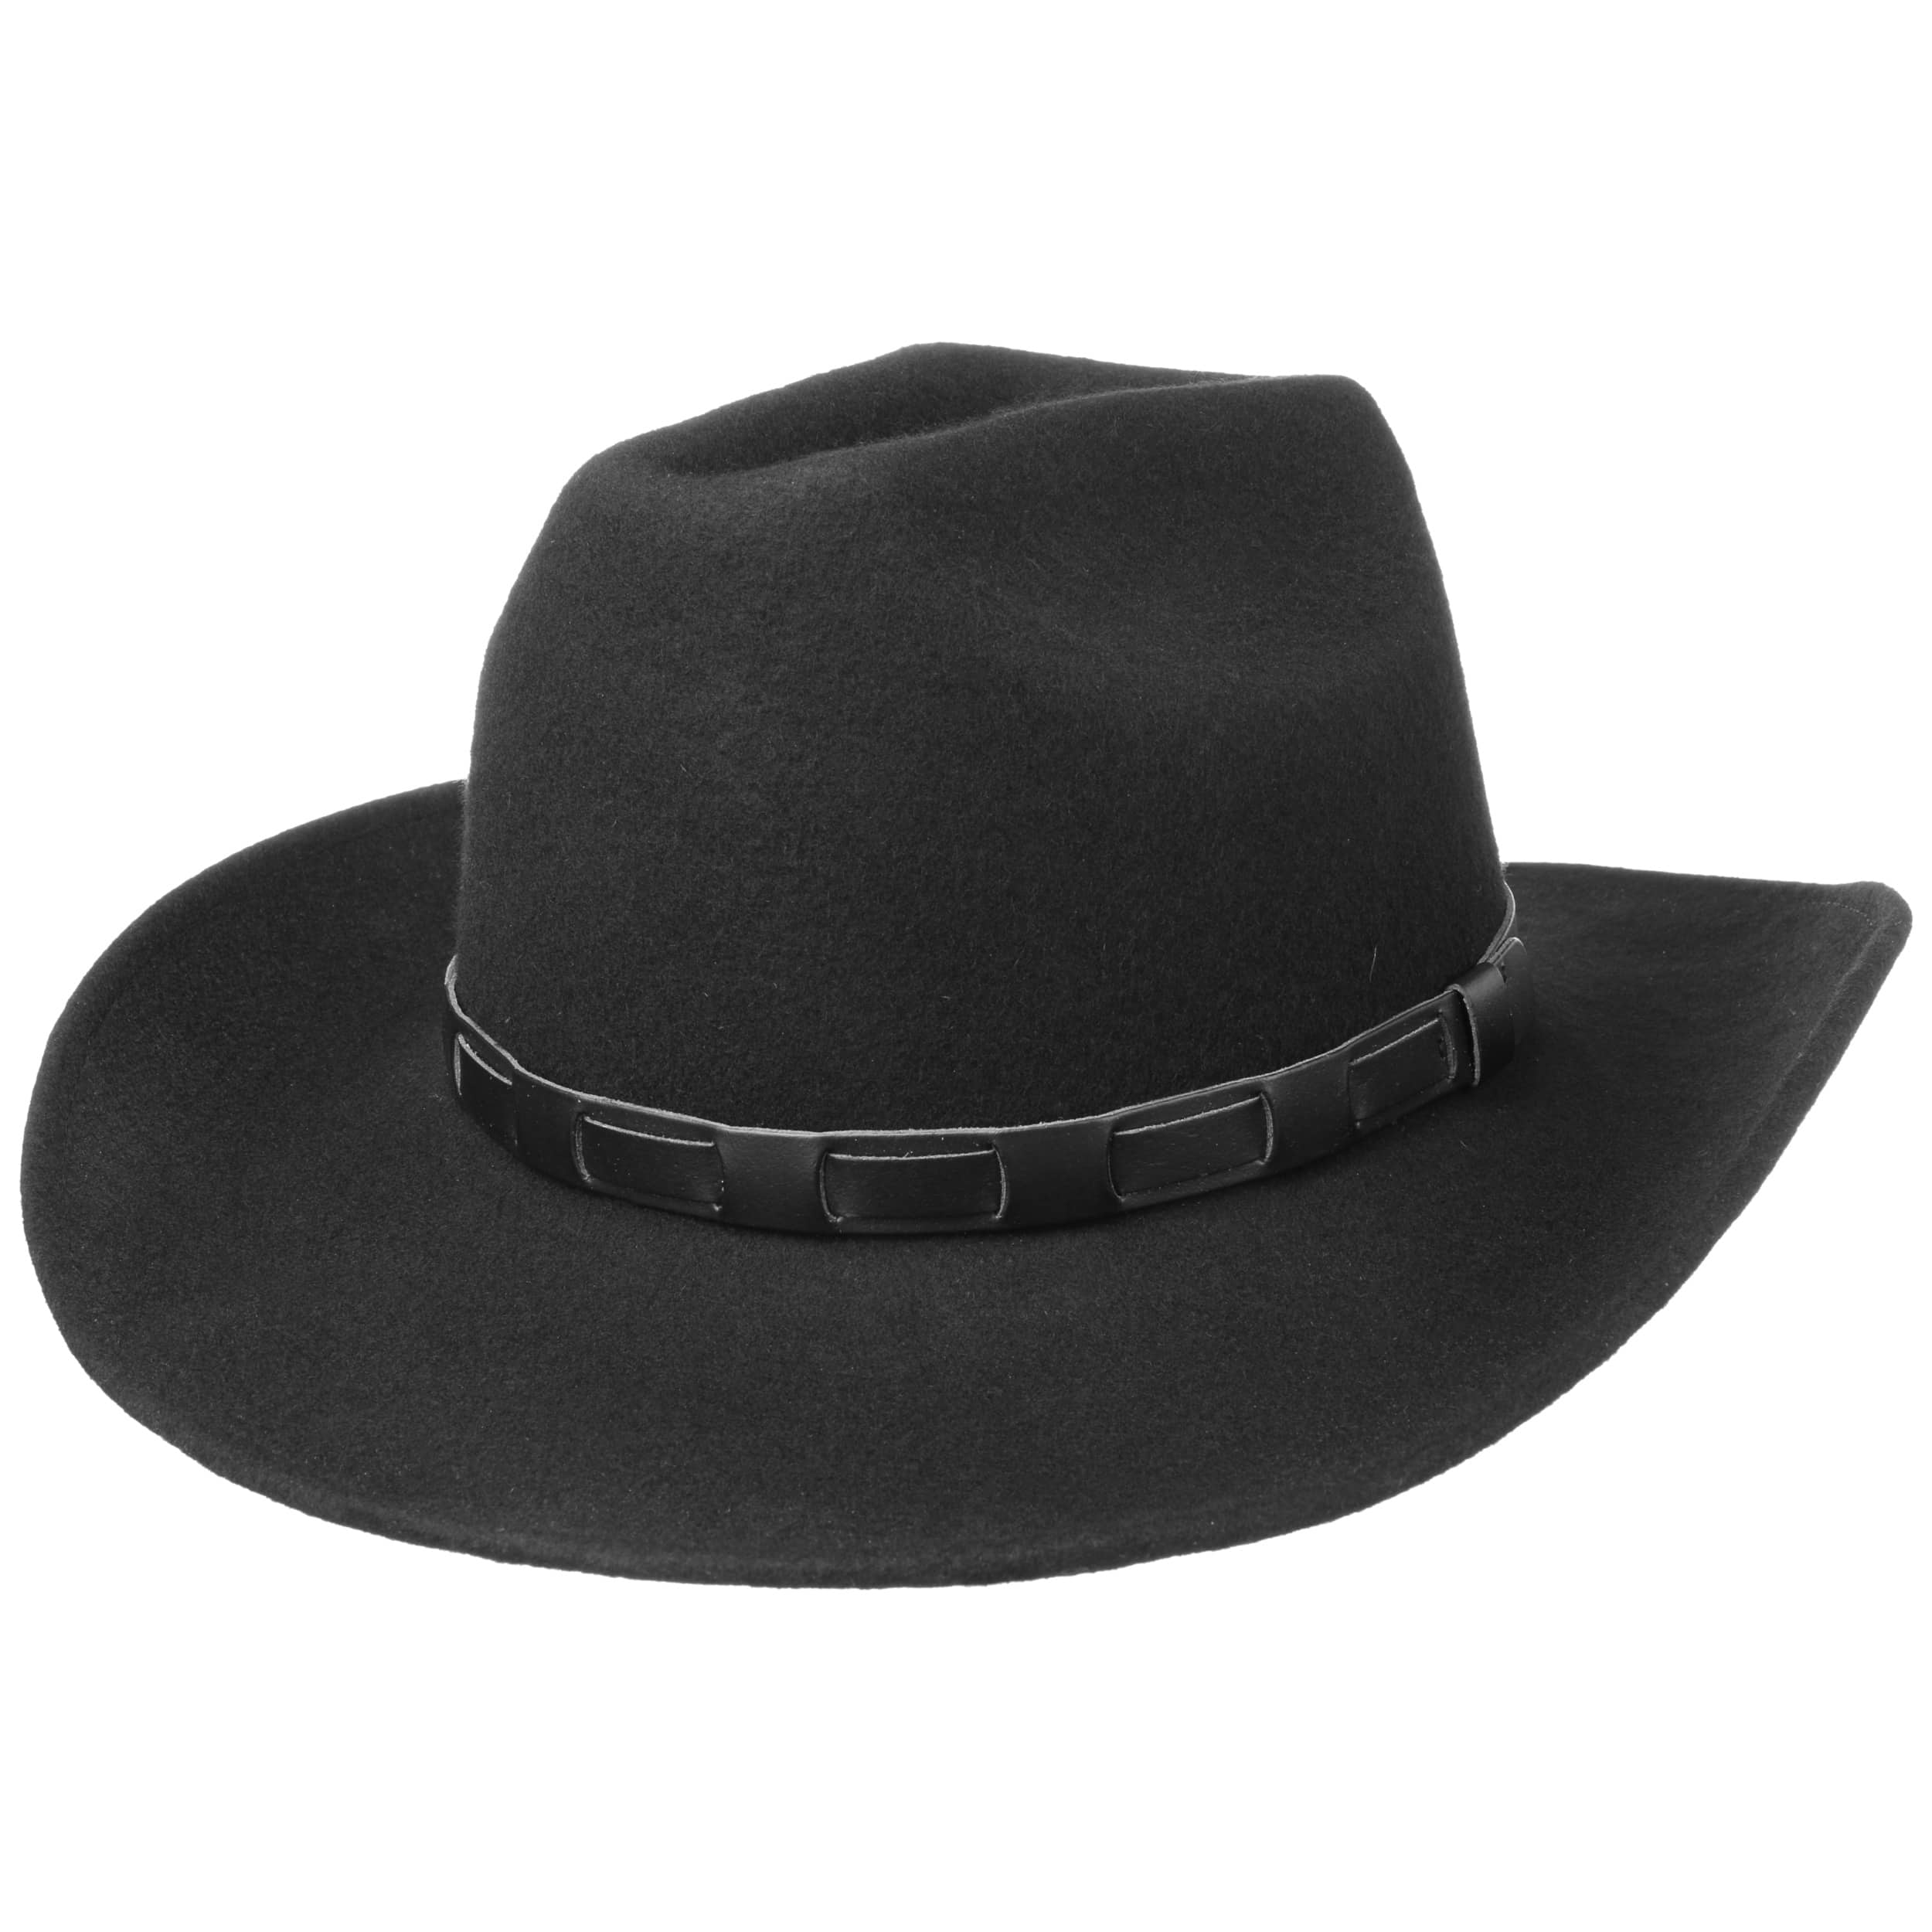 5f1e0033fa3 Bill Cody Western Hat. by Lipodo